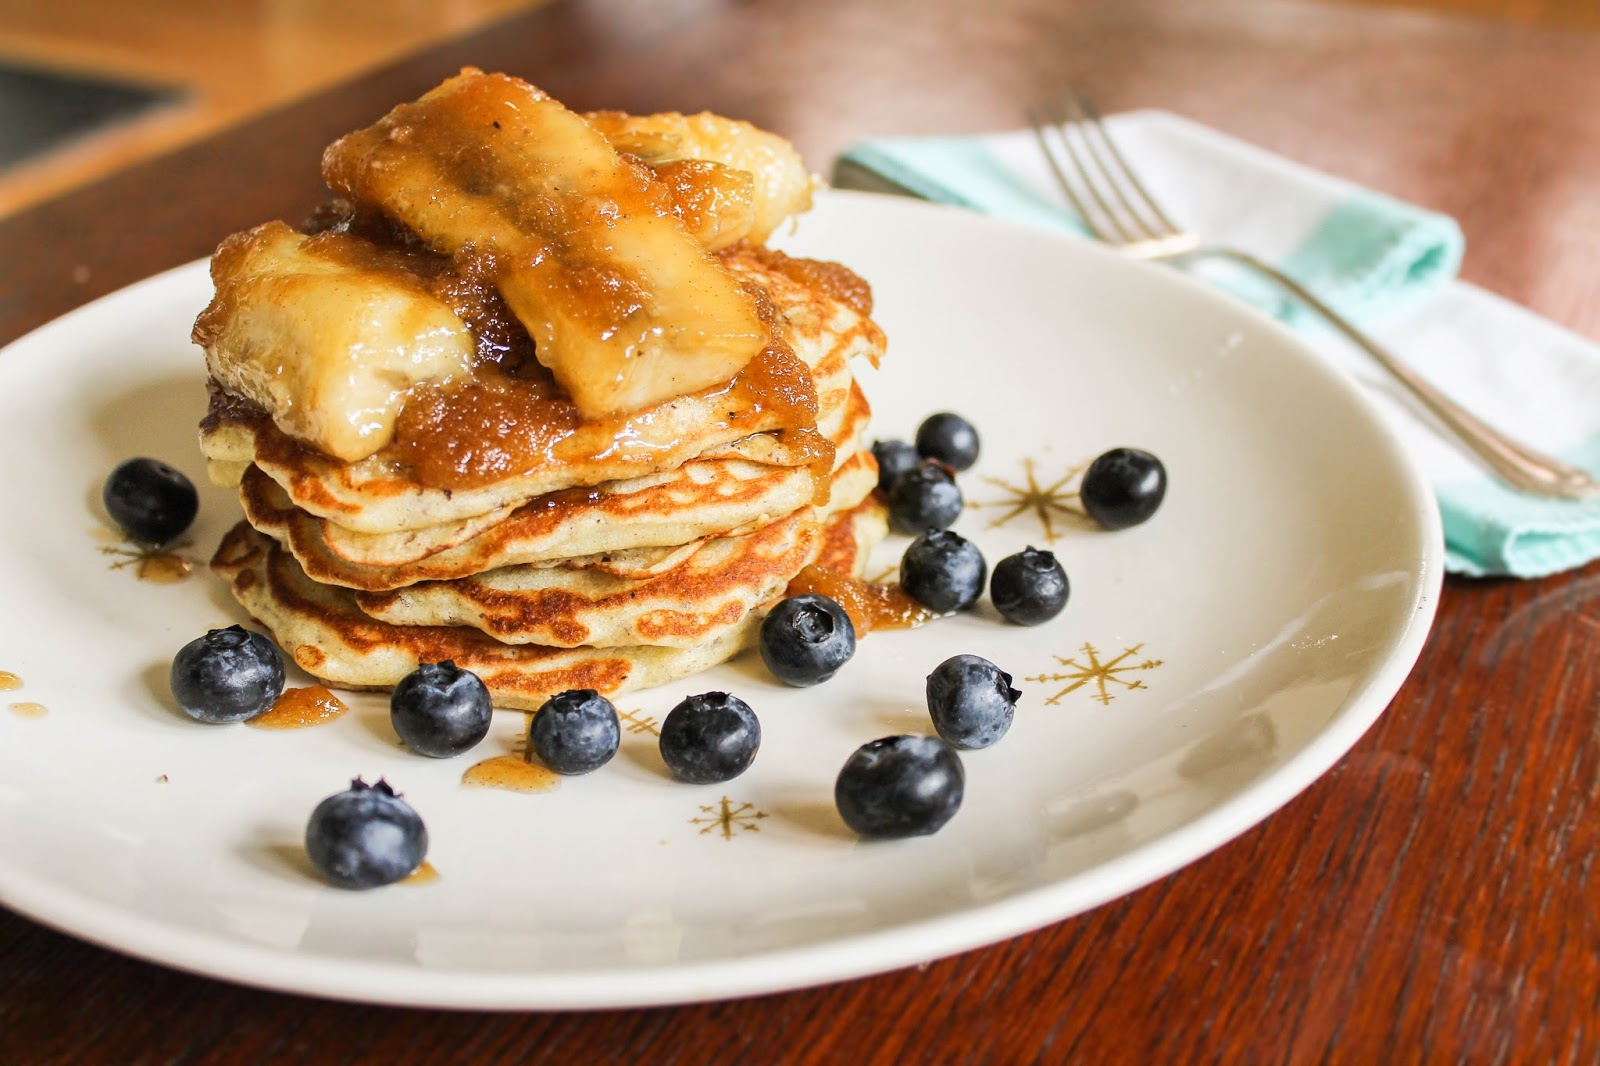 Blueberry Banana and Linseed Pancakes